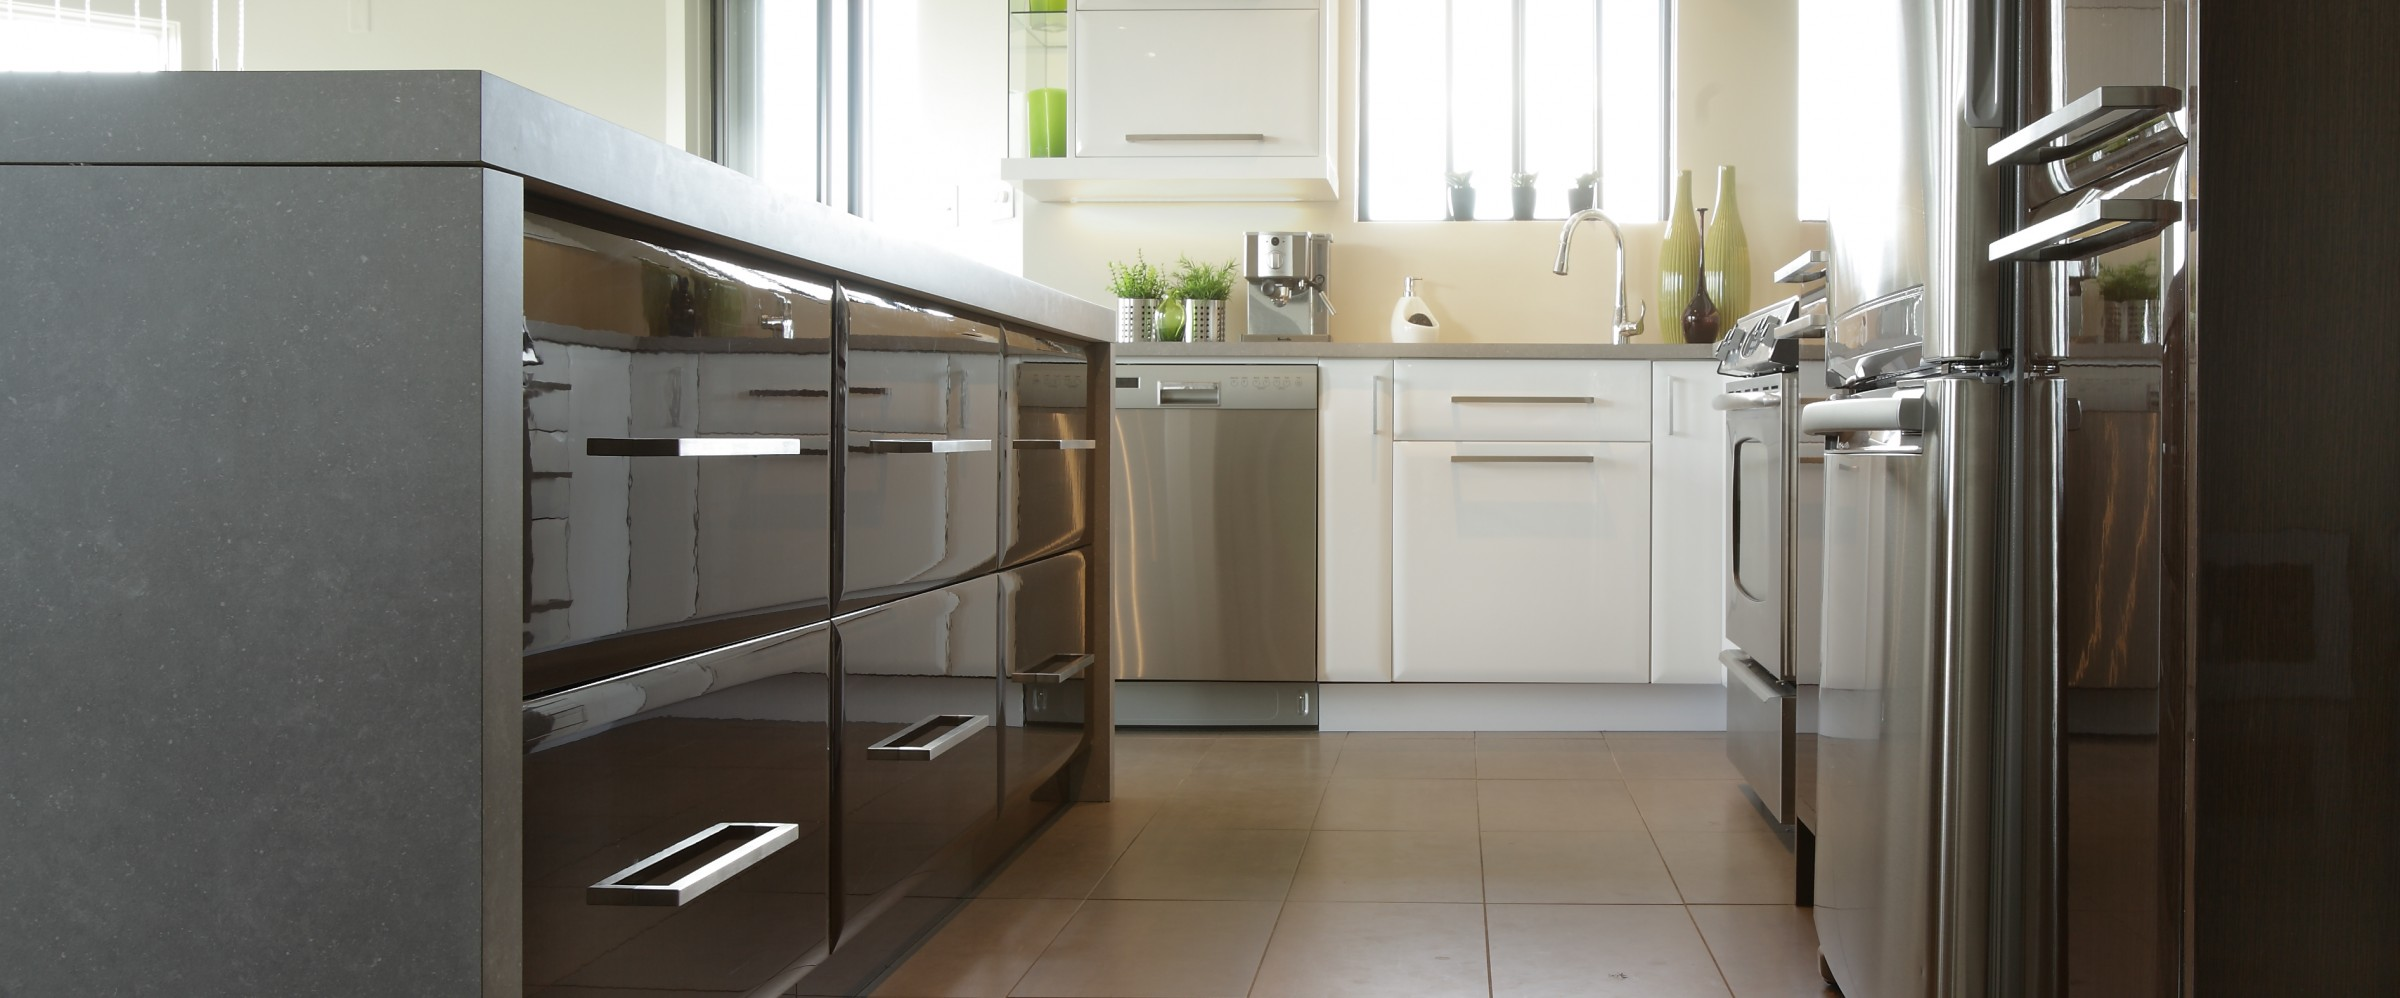 quebec countertop and cabinet door maker premoule marks 50th anniversary